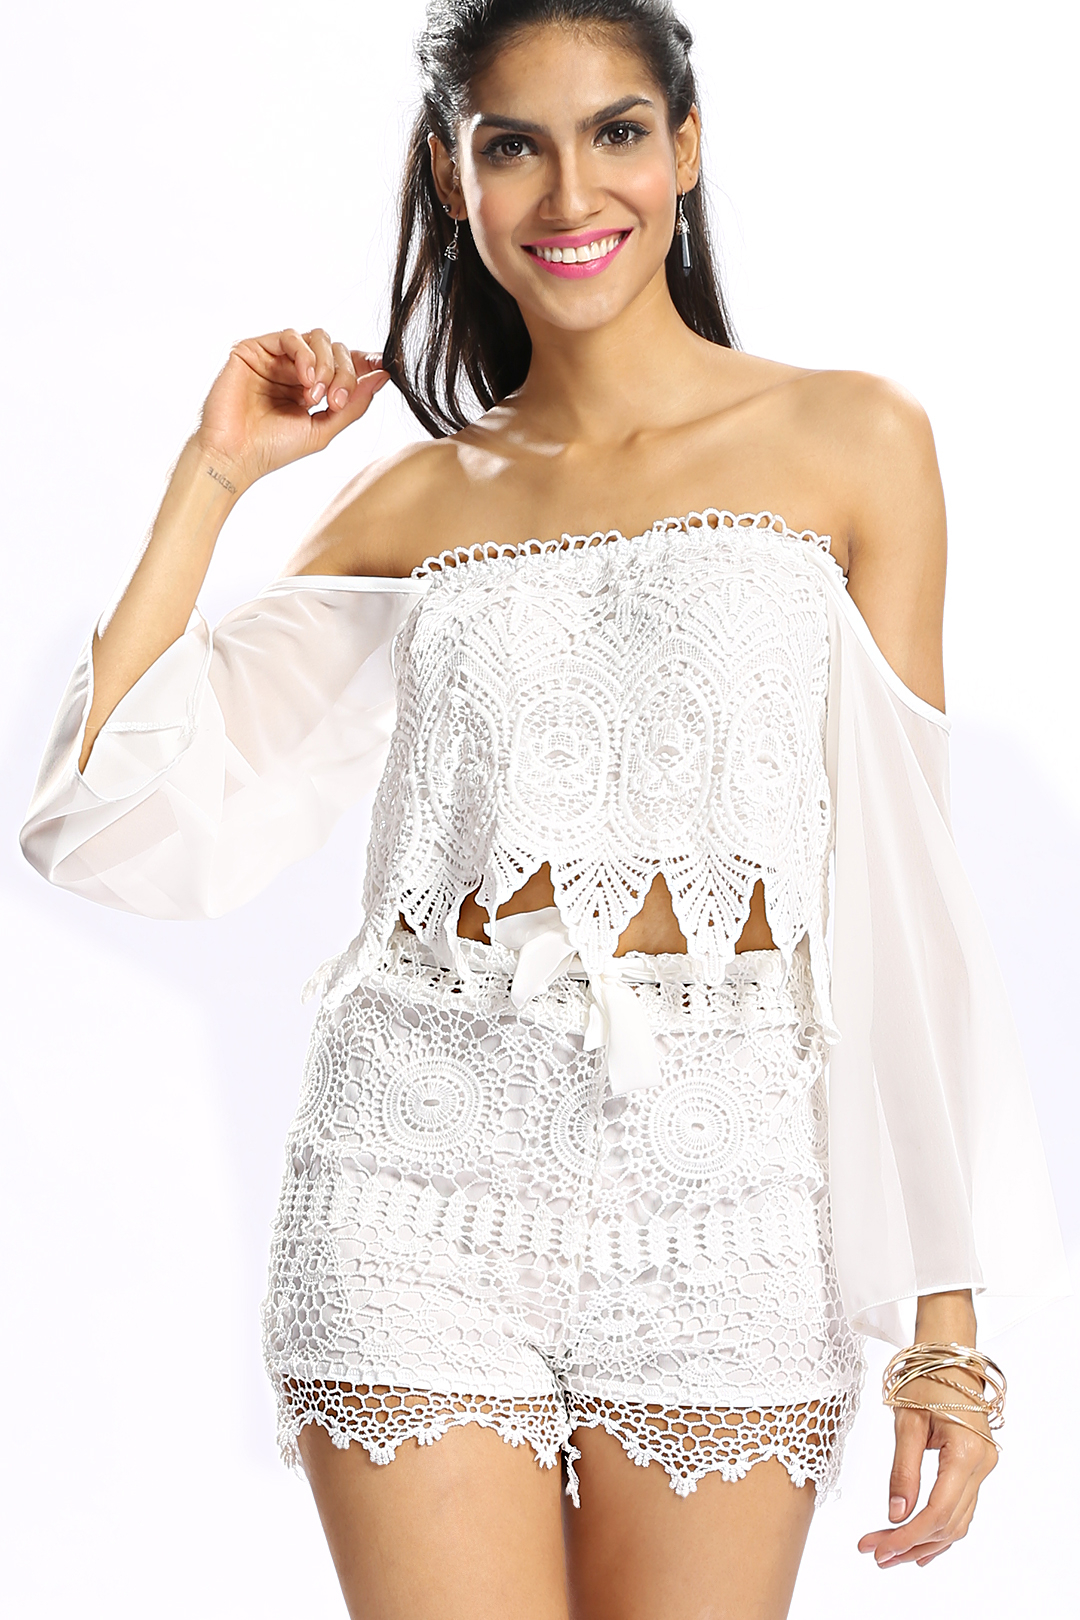 White Crochet Trim Lace All Over Stretch Waistband Tie Front Shorts